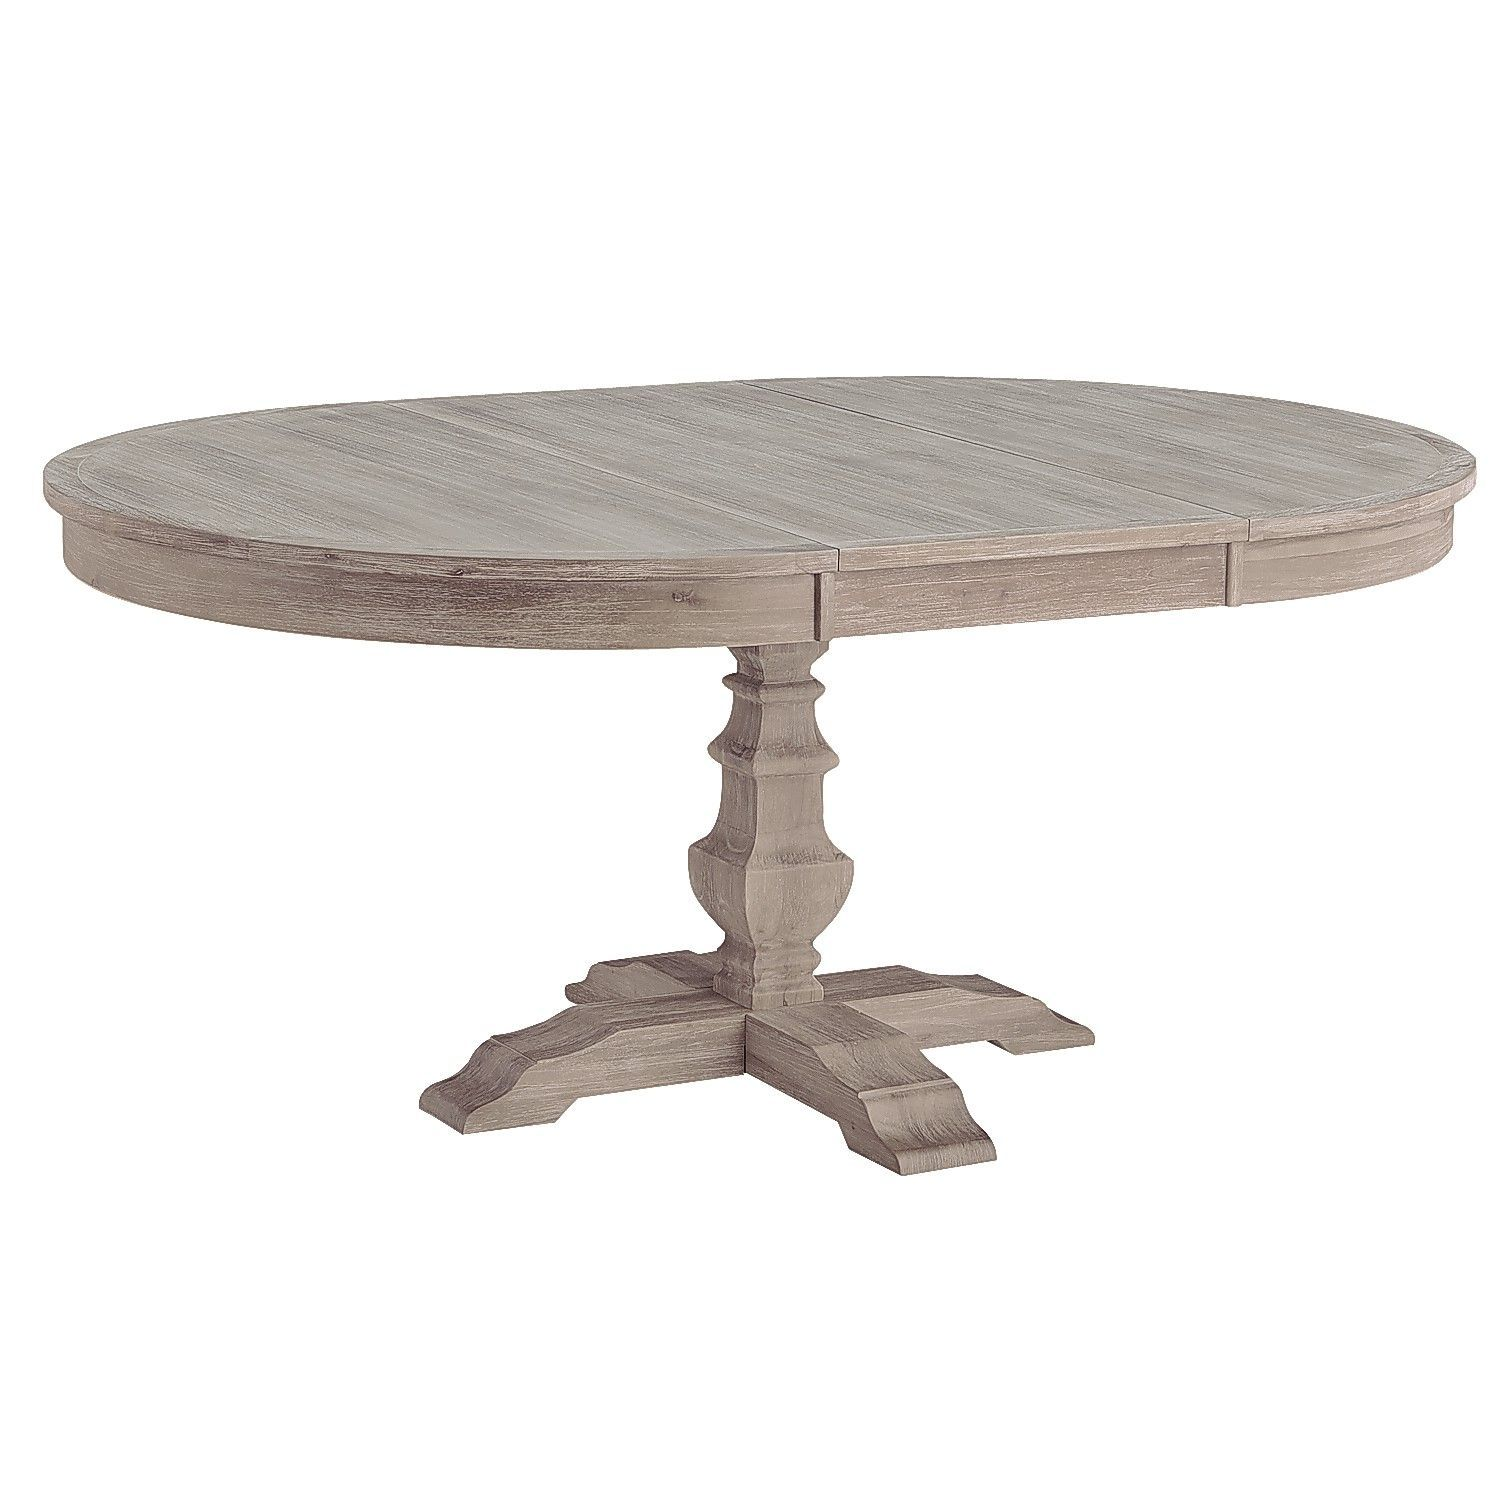 Double crank oval dining table at high fashion home industrial chic - Bradding Shadow Gray Extension Dining Table